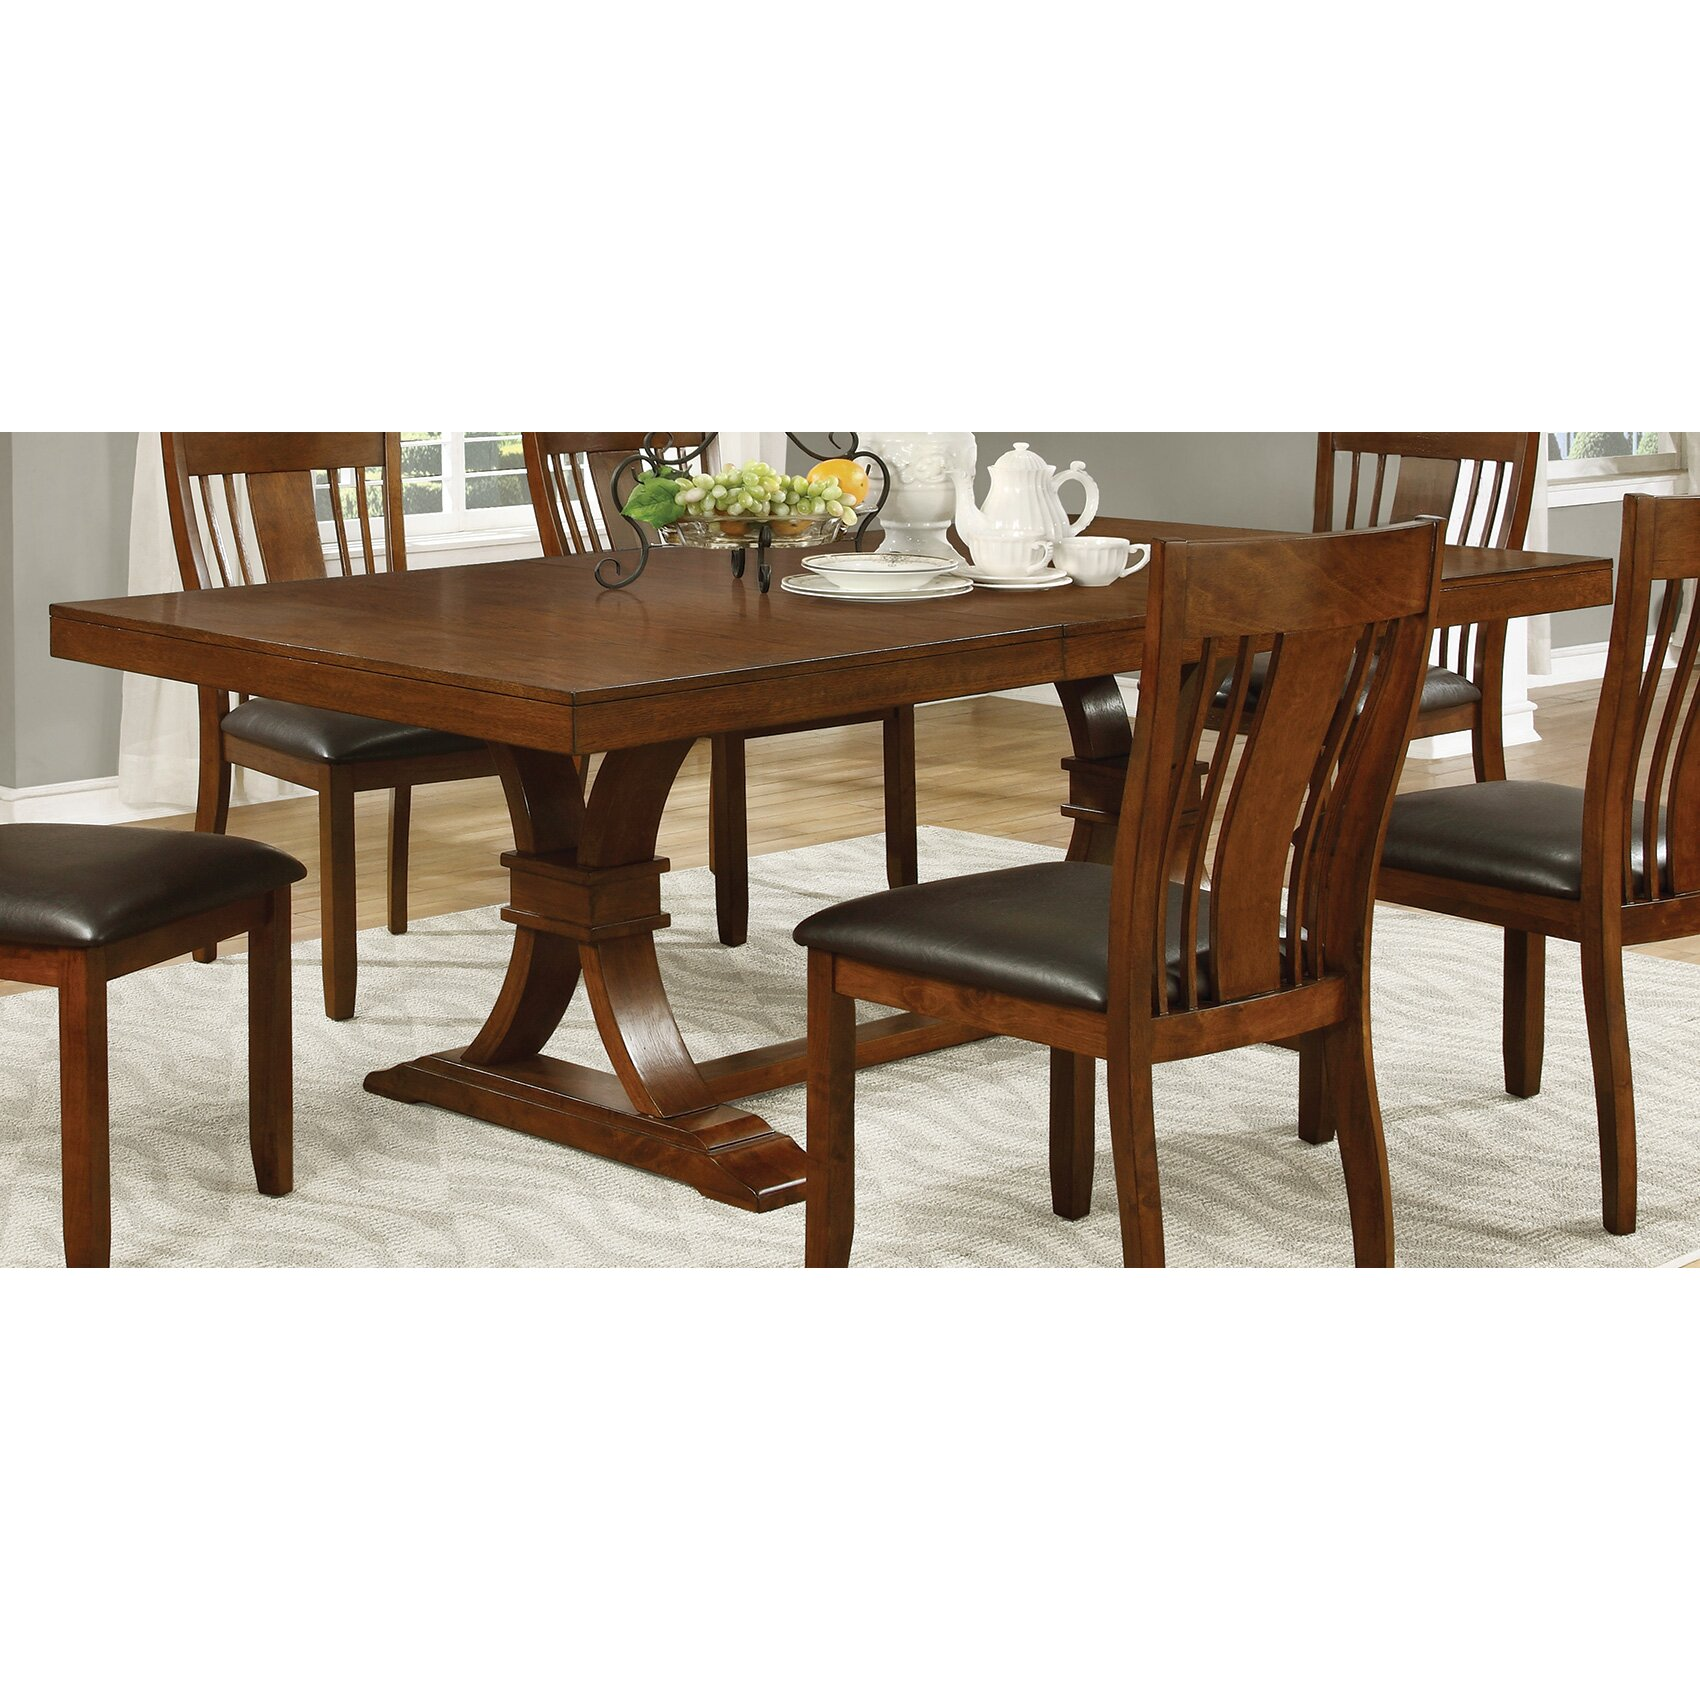 Wildon home abrams dining table reviews for Wildon home dining